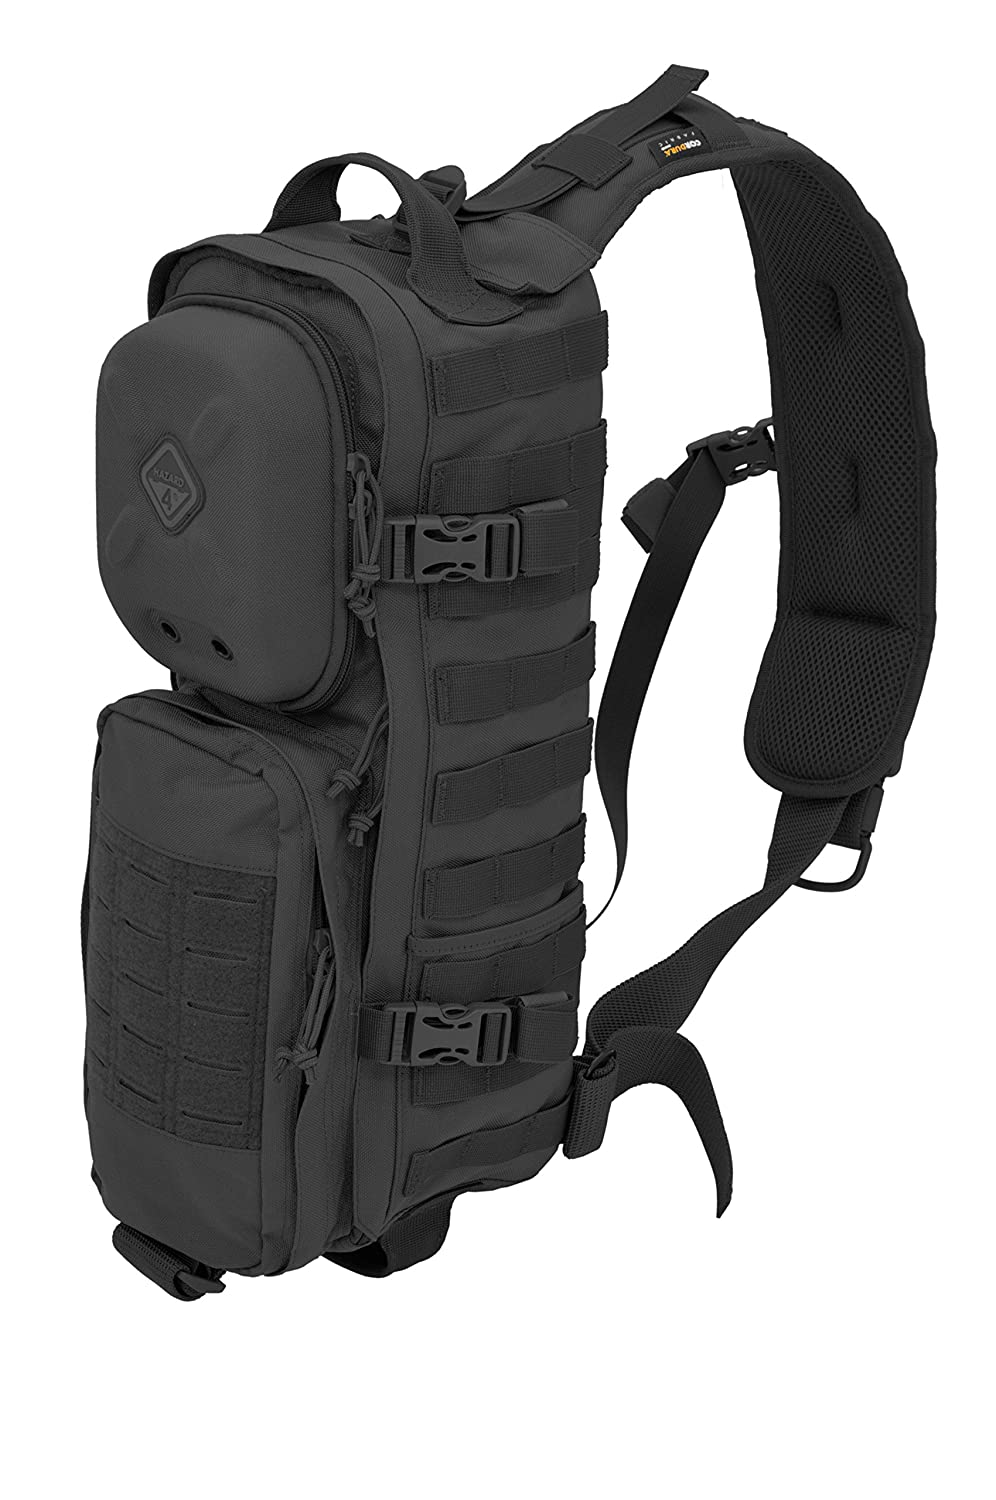 Hazard 4 Plan-B 17 Slingbag